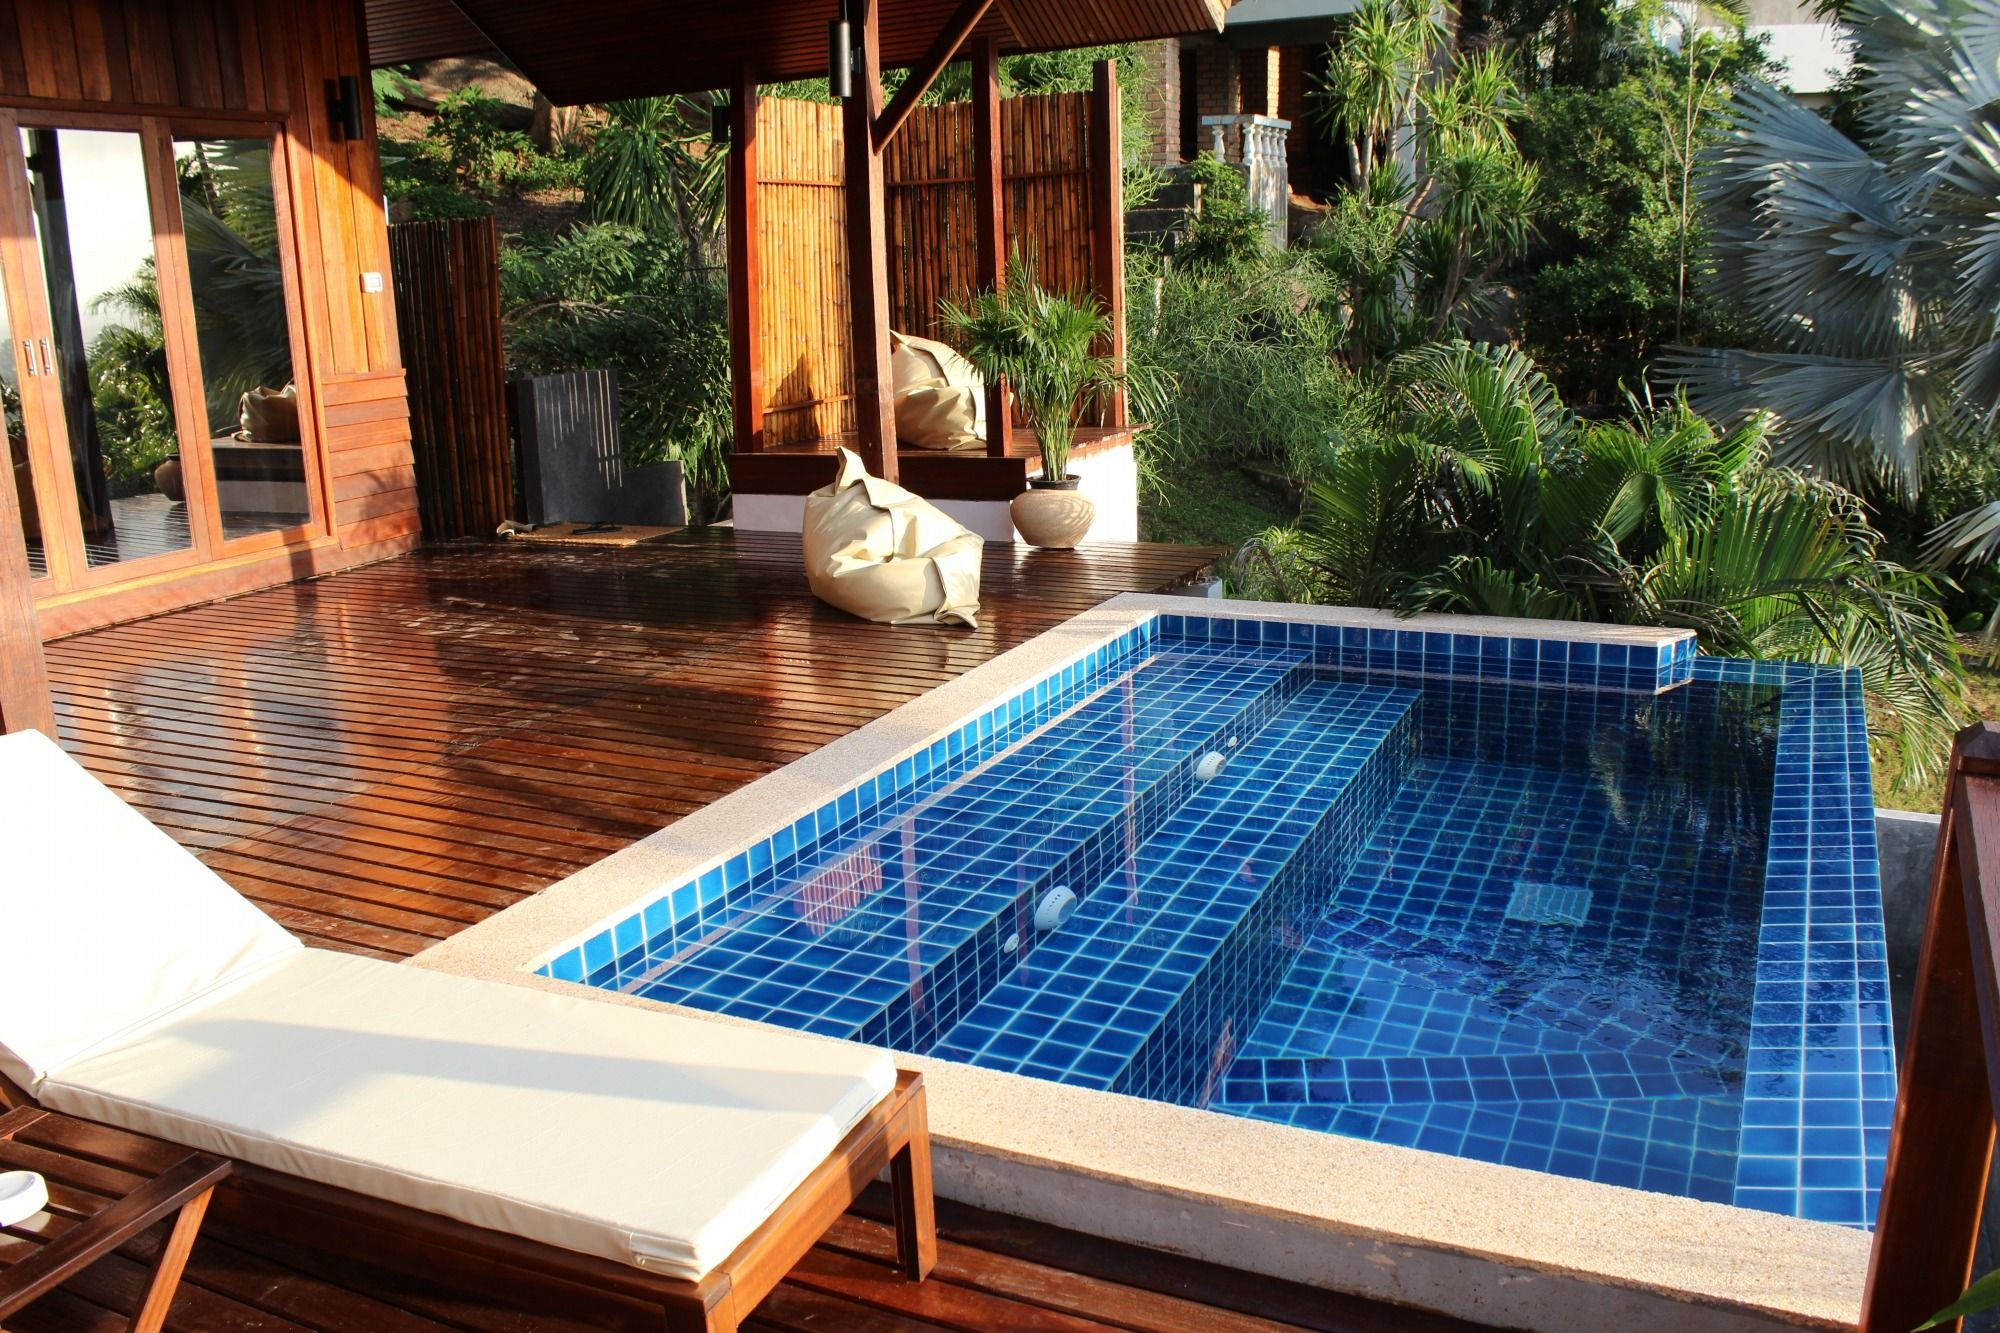 Top 10 romantic hotels in the world   Pool patio, Small ...